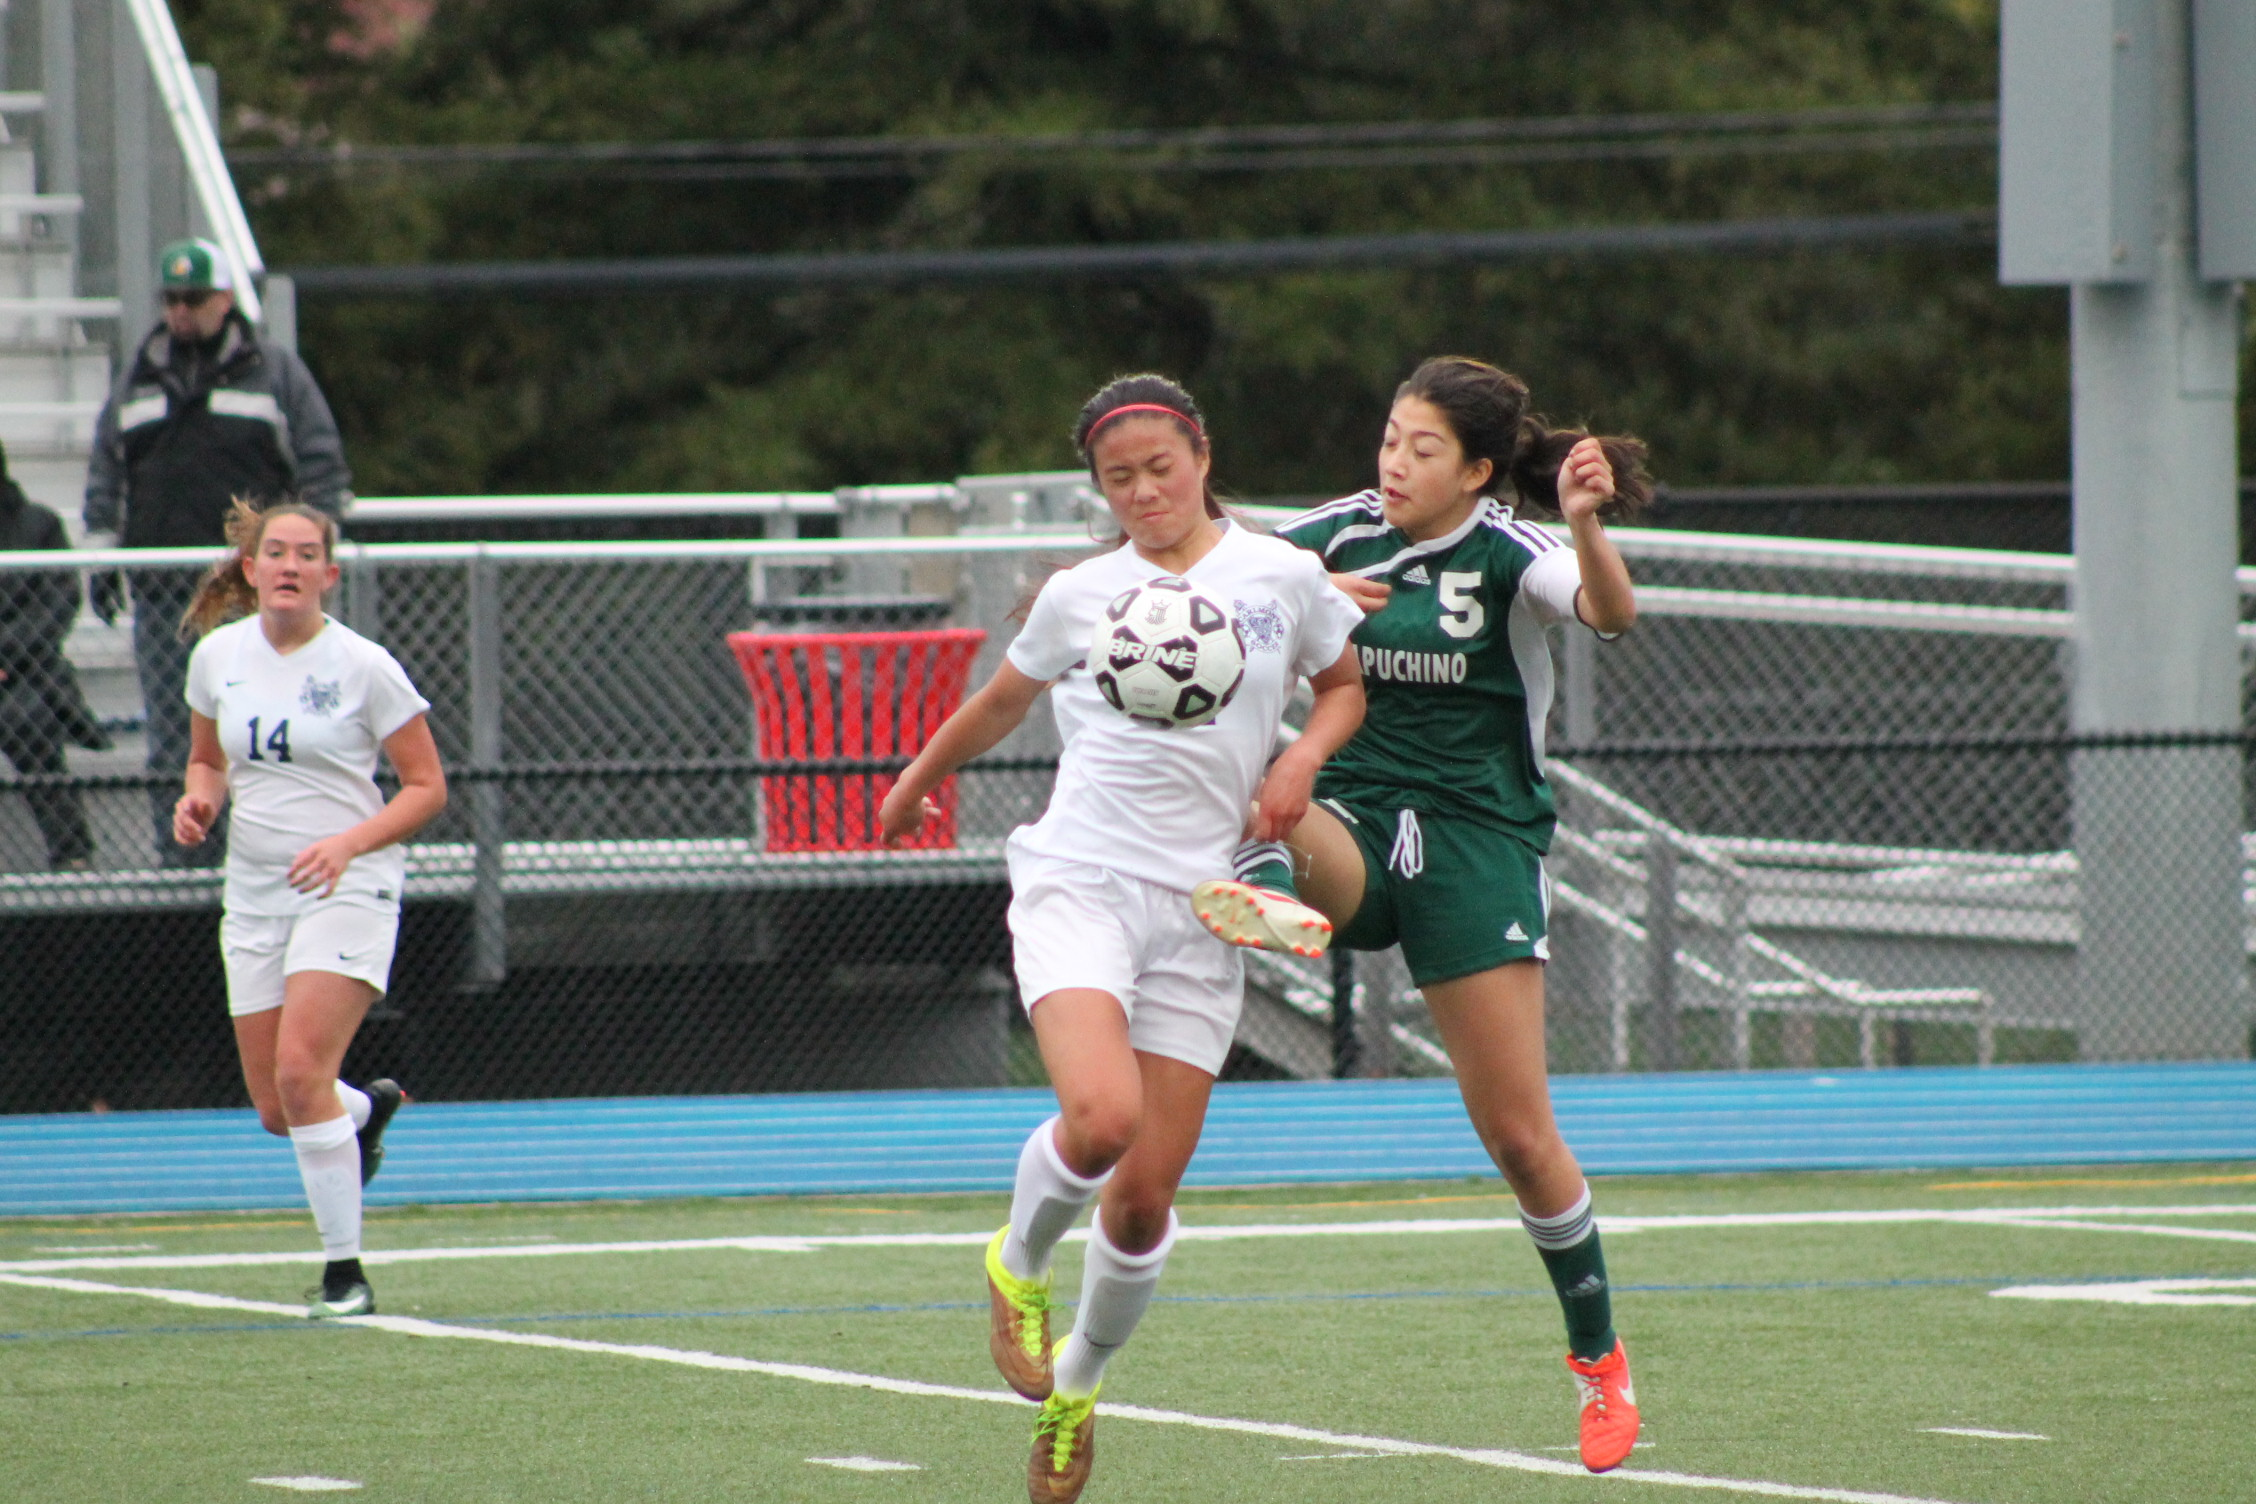 Freshman Samantha Phan pushes past a Capuchino defender on her way to the goal. Phan scored 2 goals during the game against Capuchino.